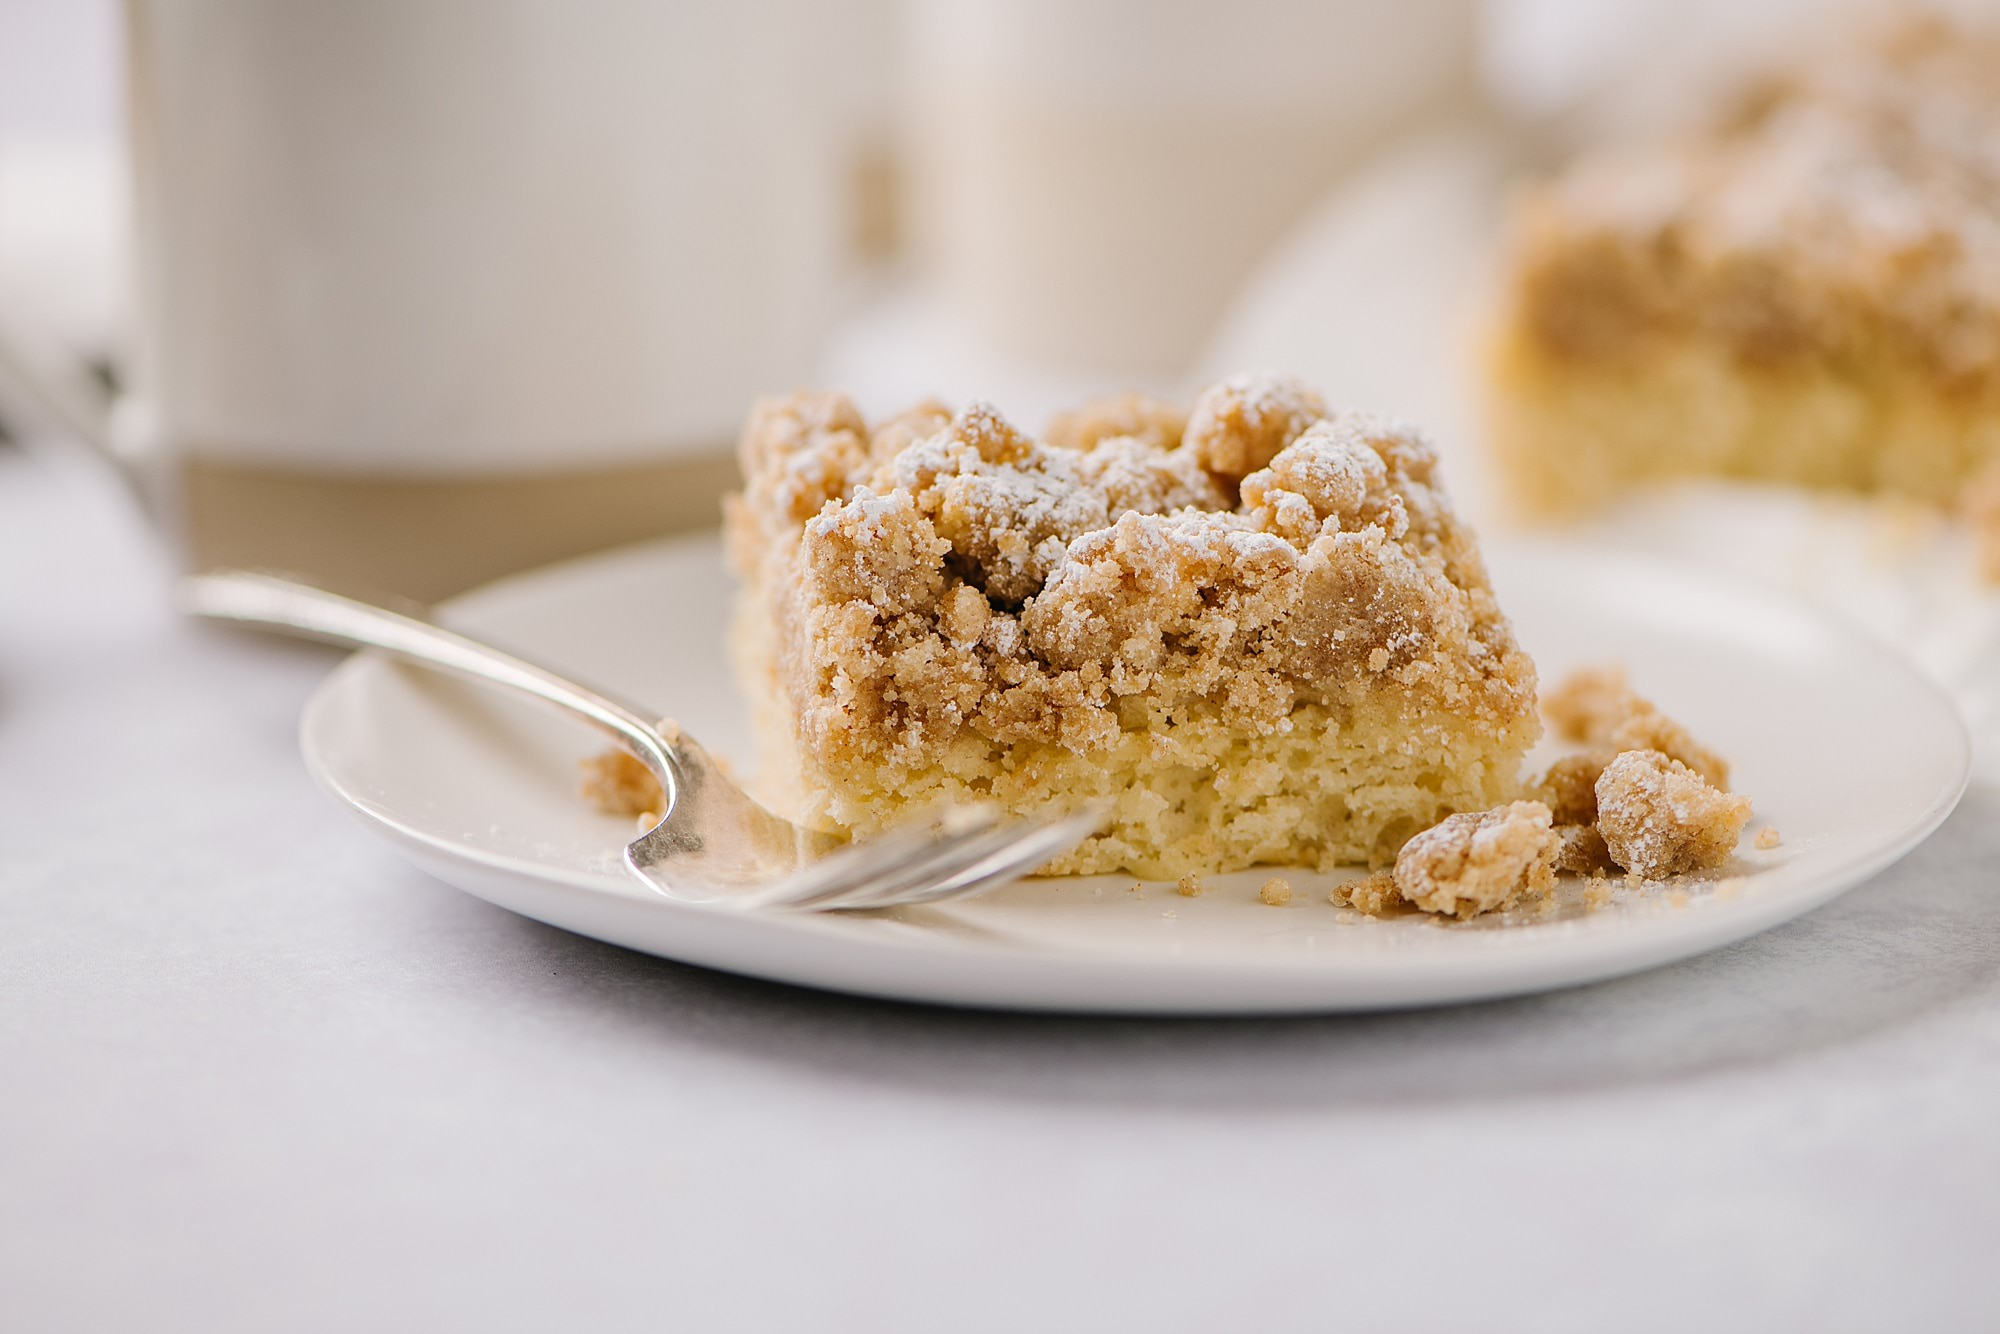 New York Style Crumb Cake on a plate with a fork and a cup of coffee in the background